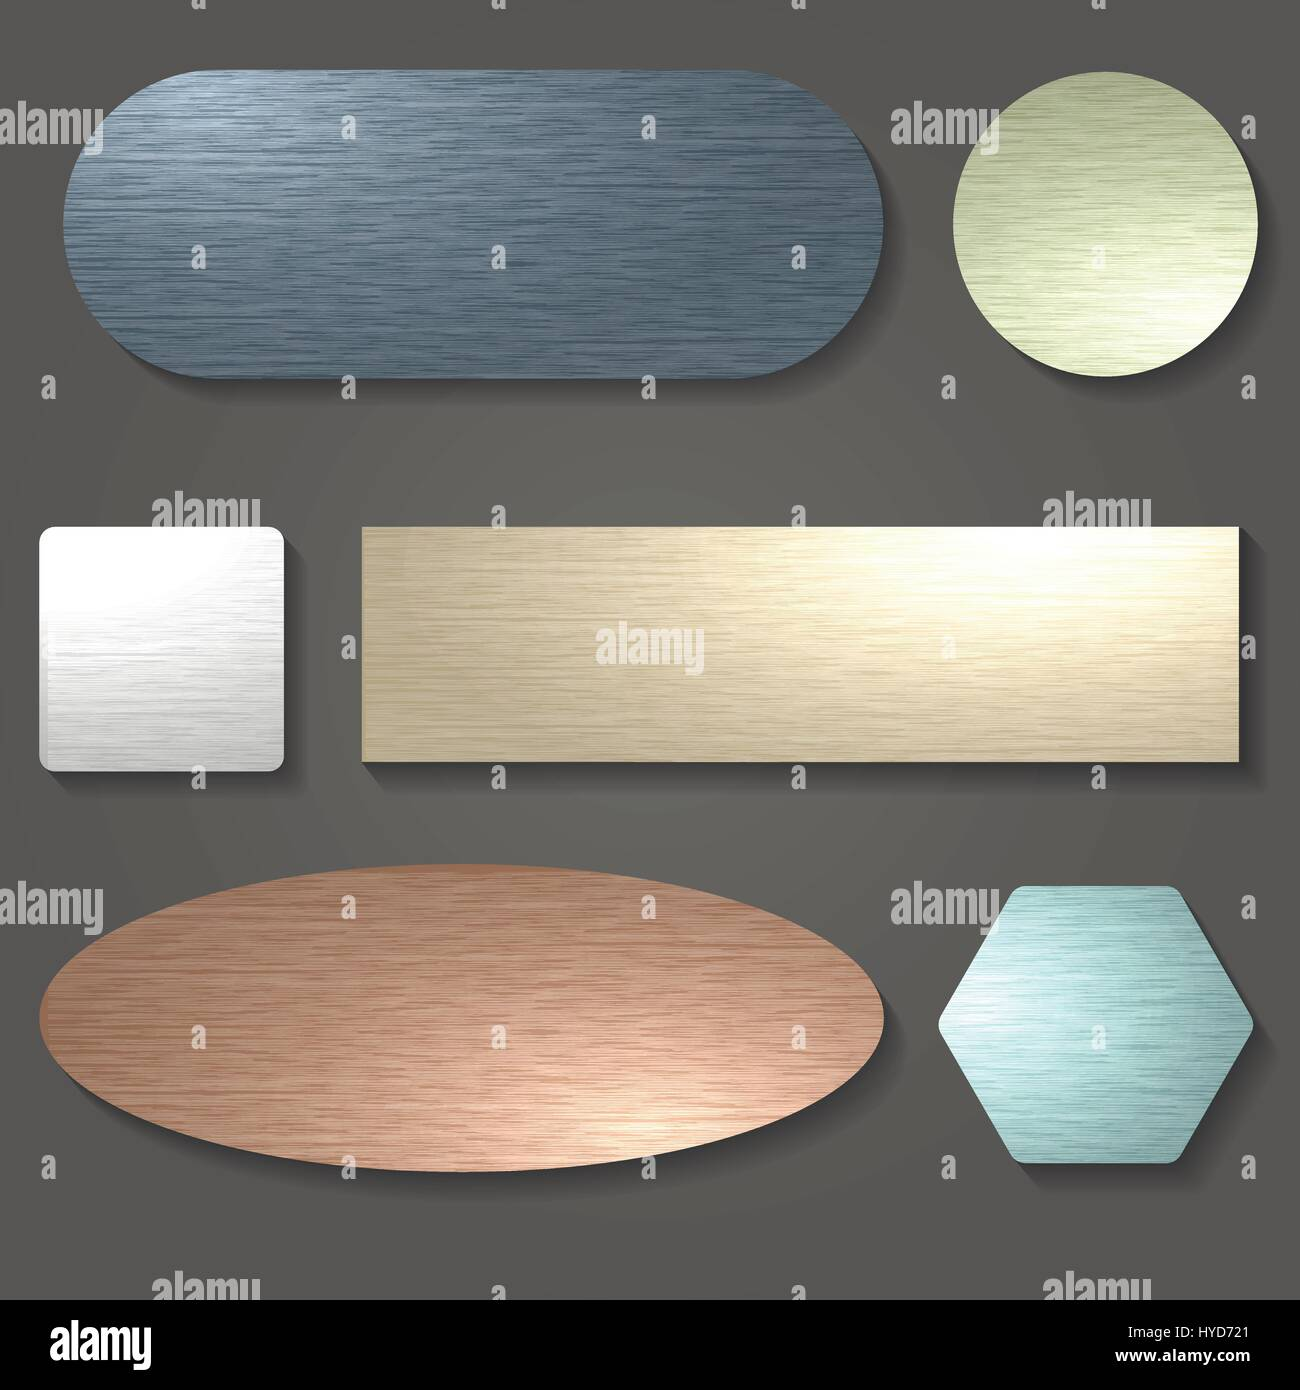 Brushed metal textures set. Brushed surfaces in various shapes.Vector illustration - Stock Vector